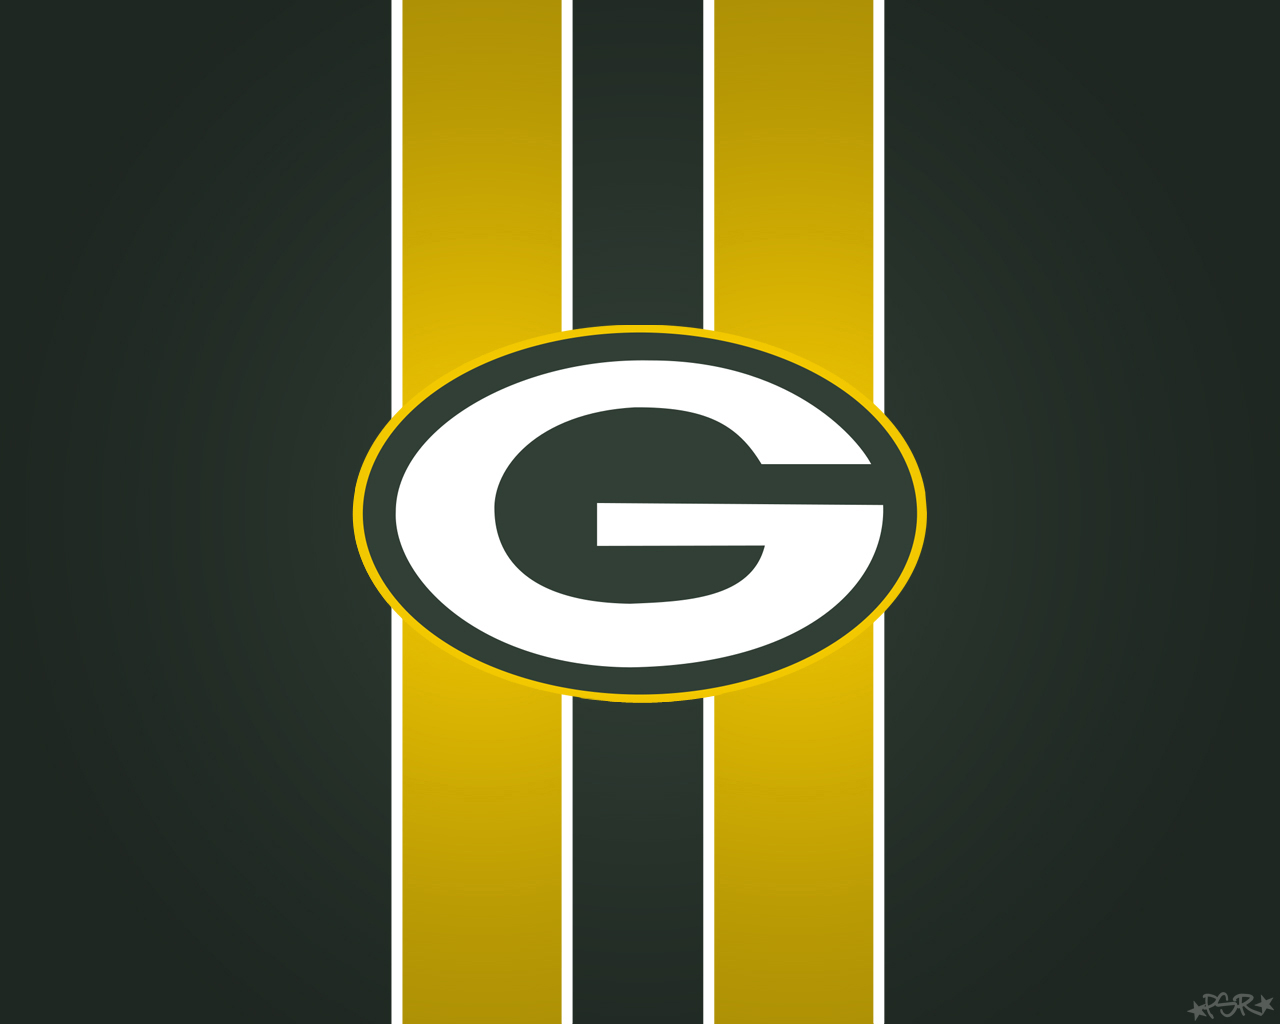 Free wallpaper green bay packers wallpapersafari green bay packers desktop image green bay packers wallpapers 1280x1024 voltagebd Image collections